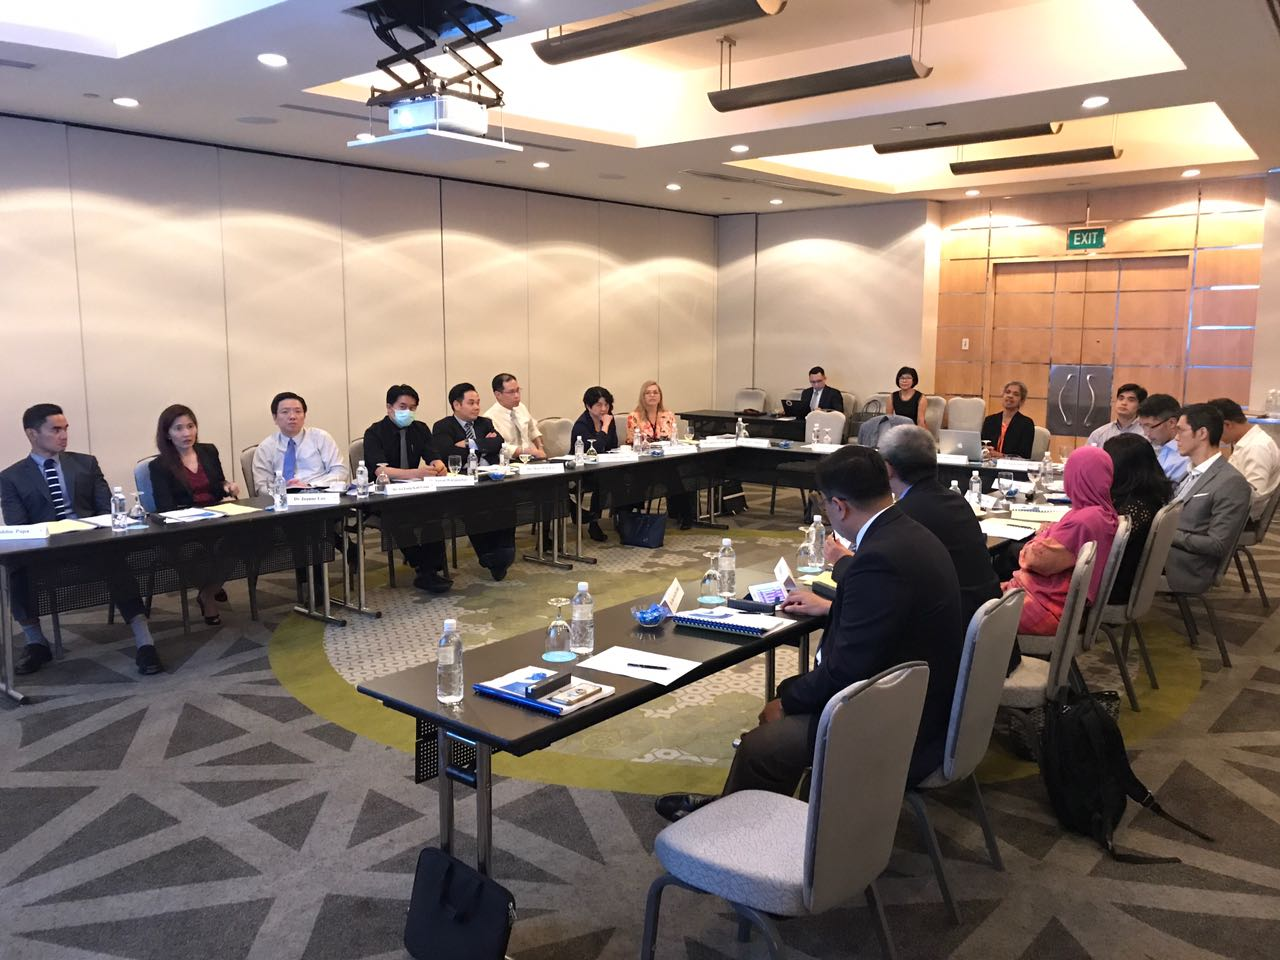 Participants from around the region participating in a discussion at the ARIA IV Experts Meeting at the Pan Pacific on 9 June 2017 in Singapore.